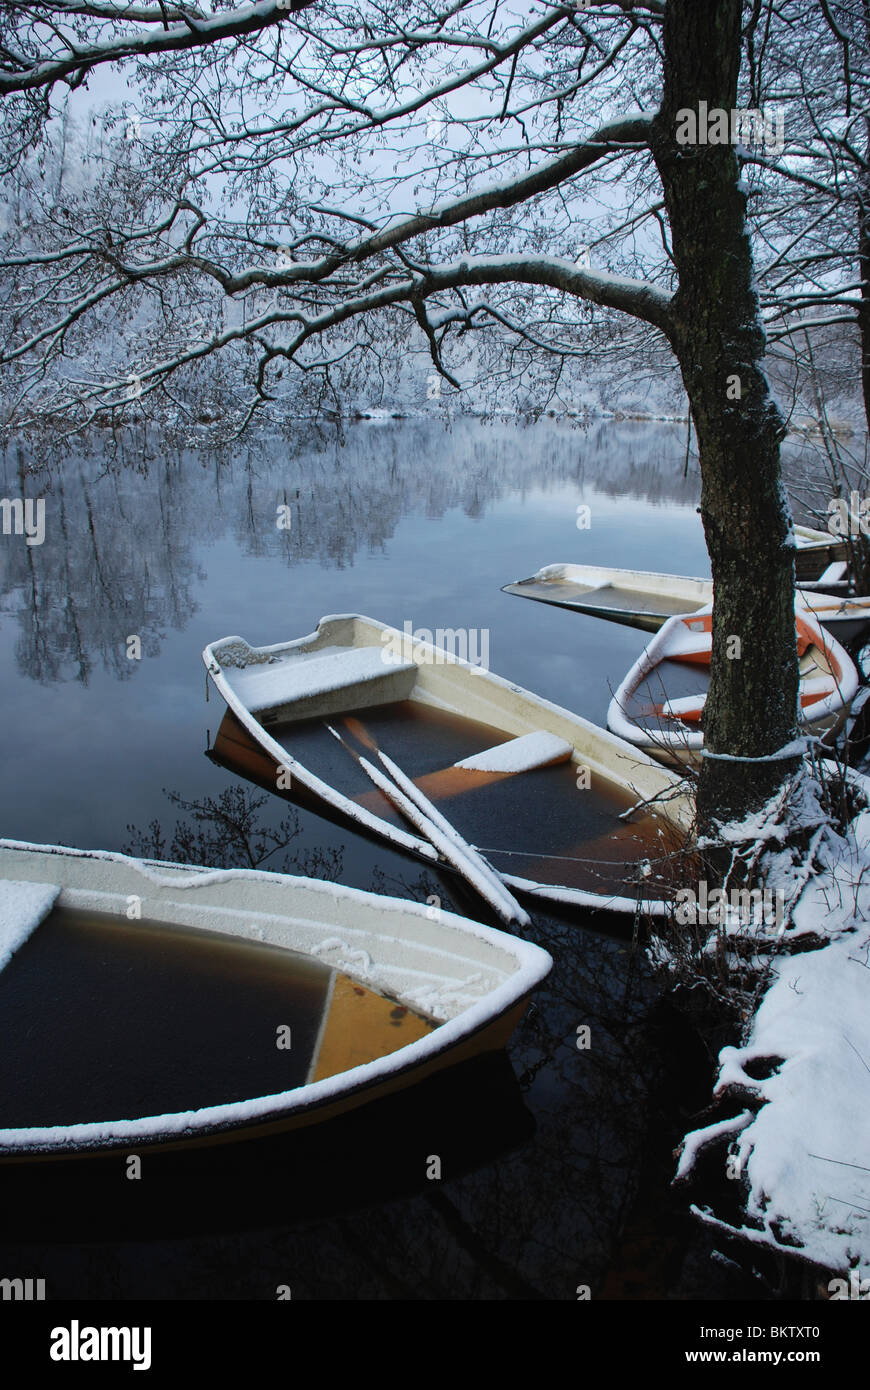 Boats in winter time - Stock Image